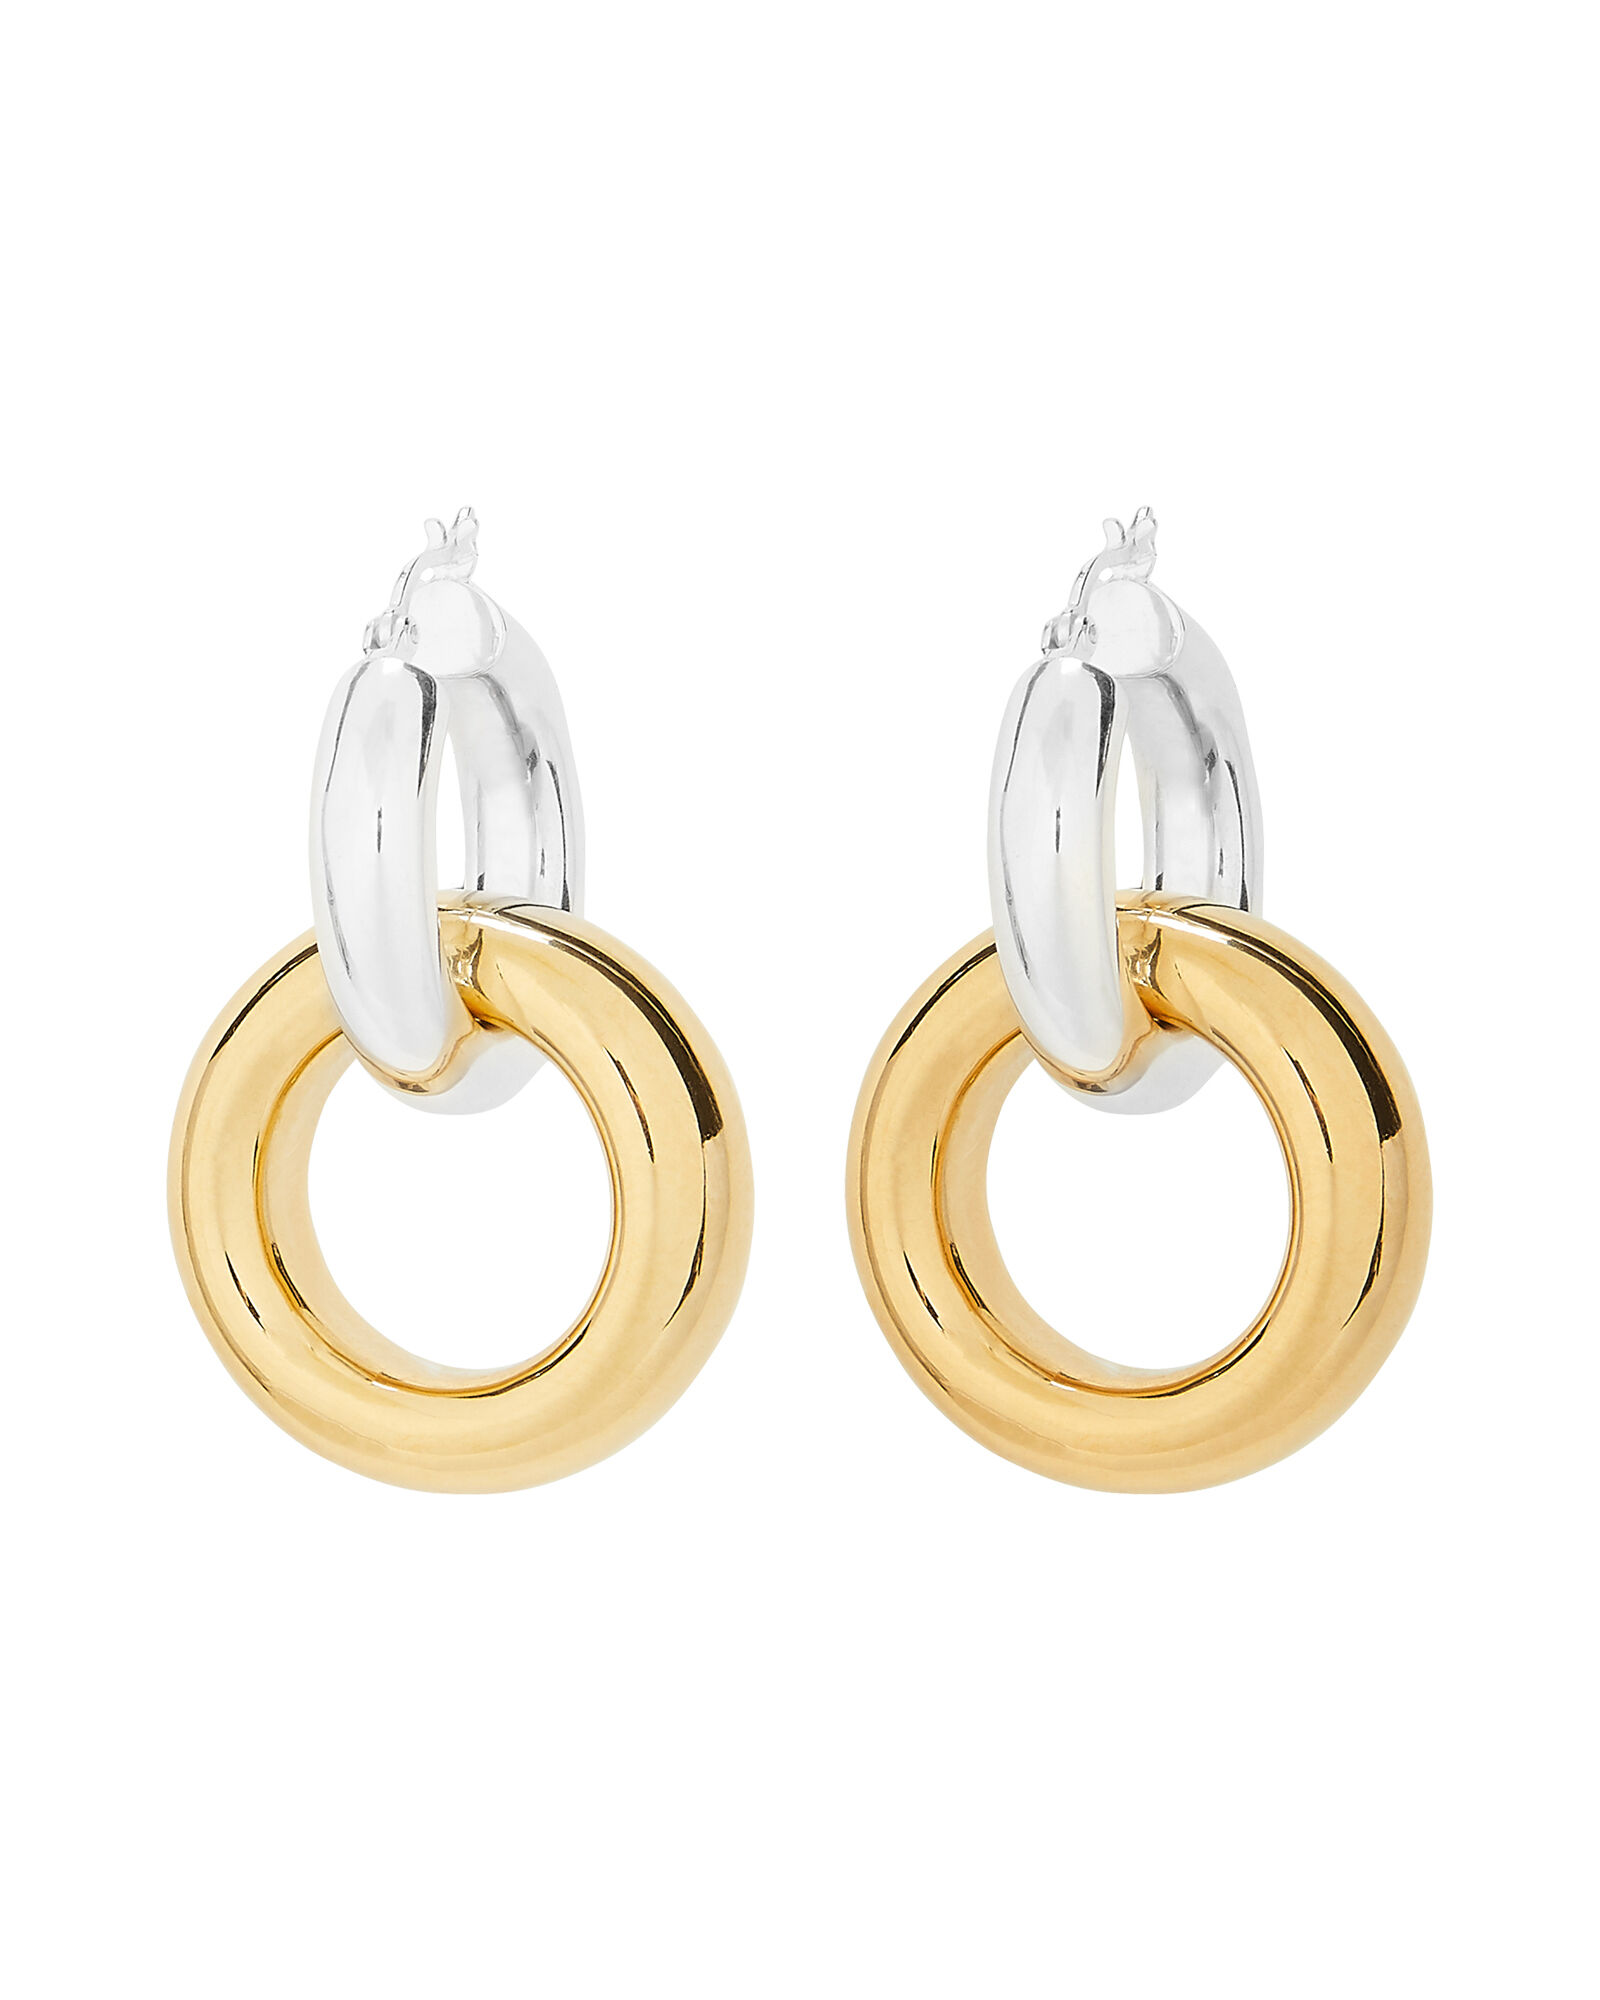 Two-Tone Interlocking Single Hoop Earring, GOLD/SILVER, hi-res